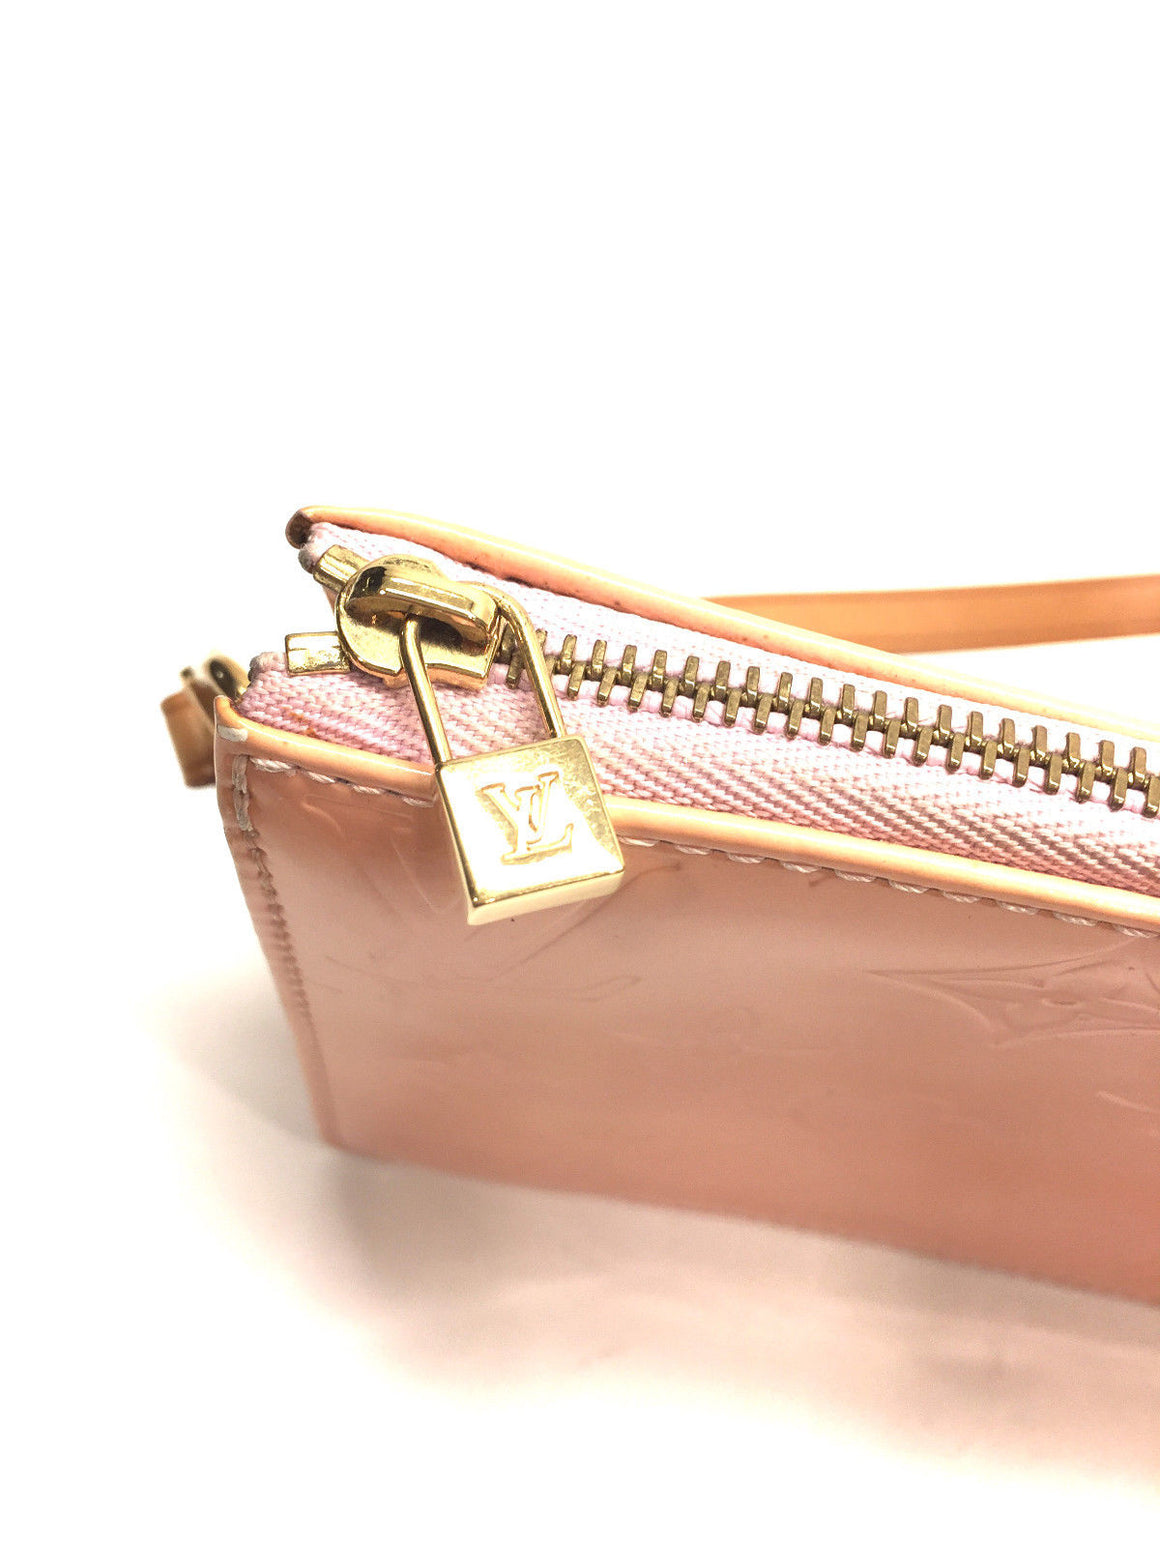 LOUIS VUITTON  Coral-Pink Monogram Vernis LEXINGTON  Pochette Bag Wristlet